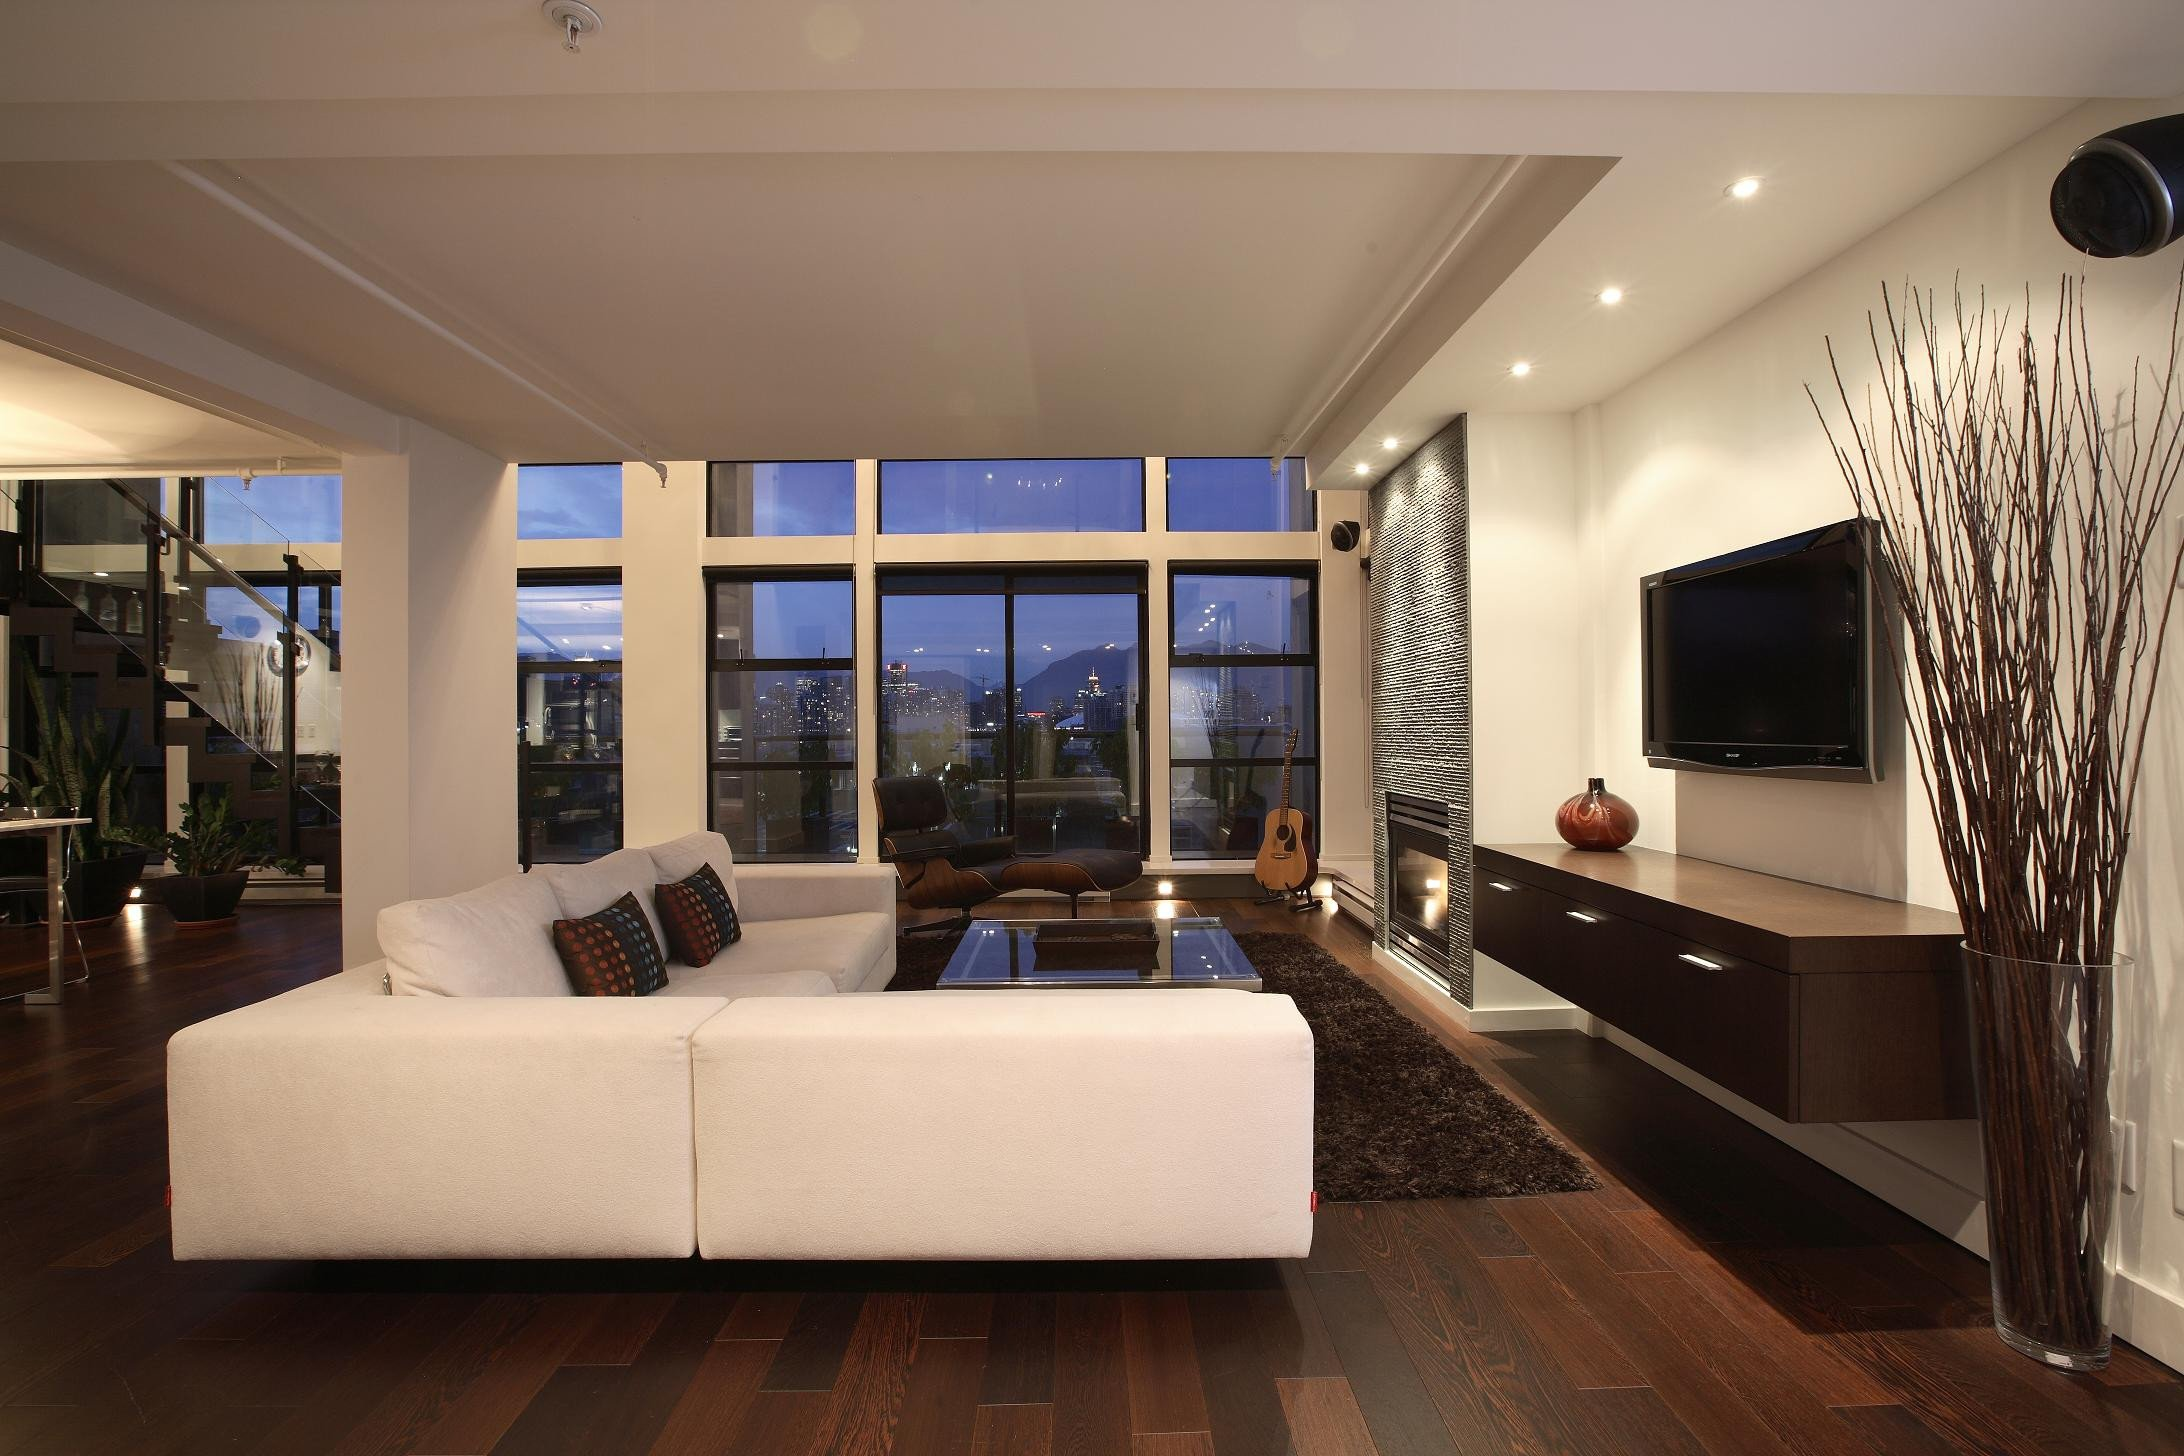 Modern Living Room Wall Decorating Ideas How to Arrange Your Living Room Furniture